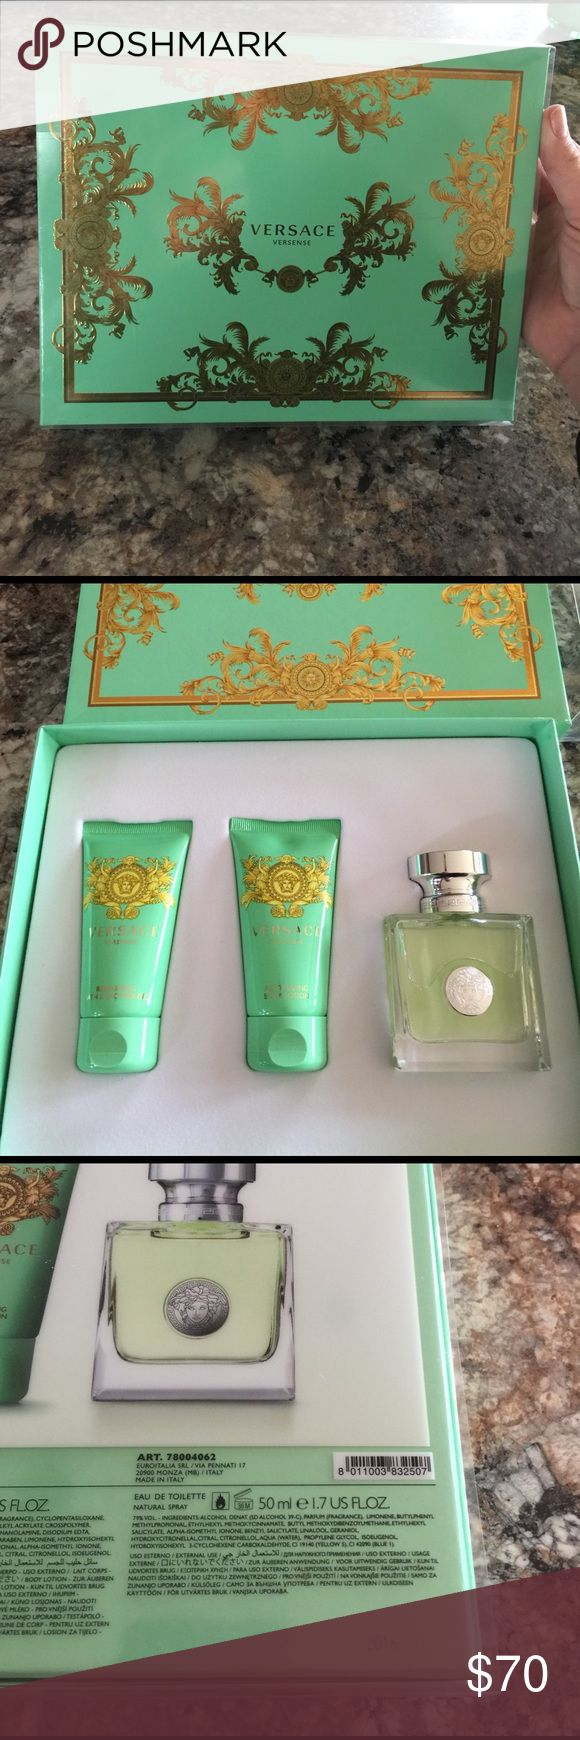 Versace Versense gift set 1.7 oz eau de toilette spray, 1.7 oz revitalizing lotion, 1.7 oz refreshing bath and shower gel. All brand new in packaging! Versace Other